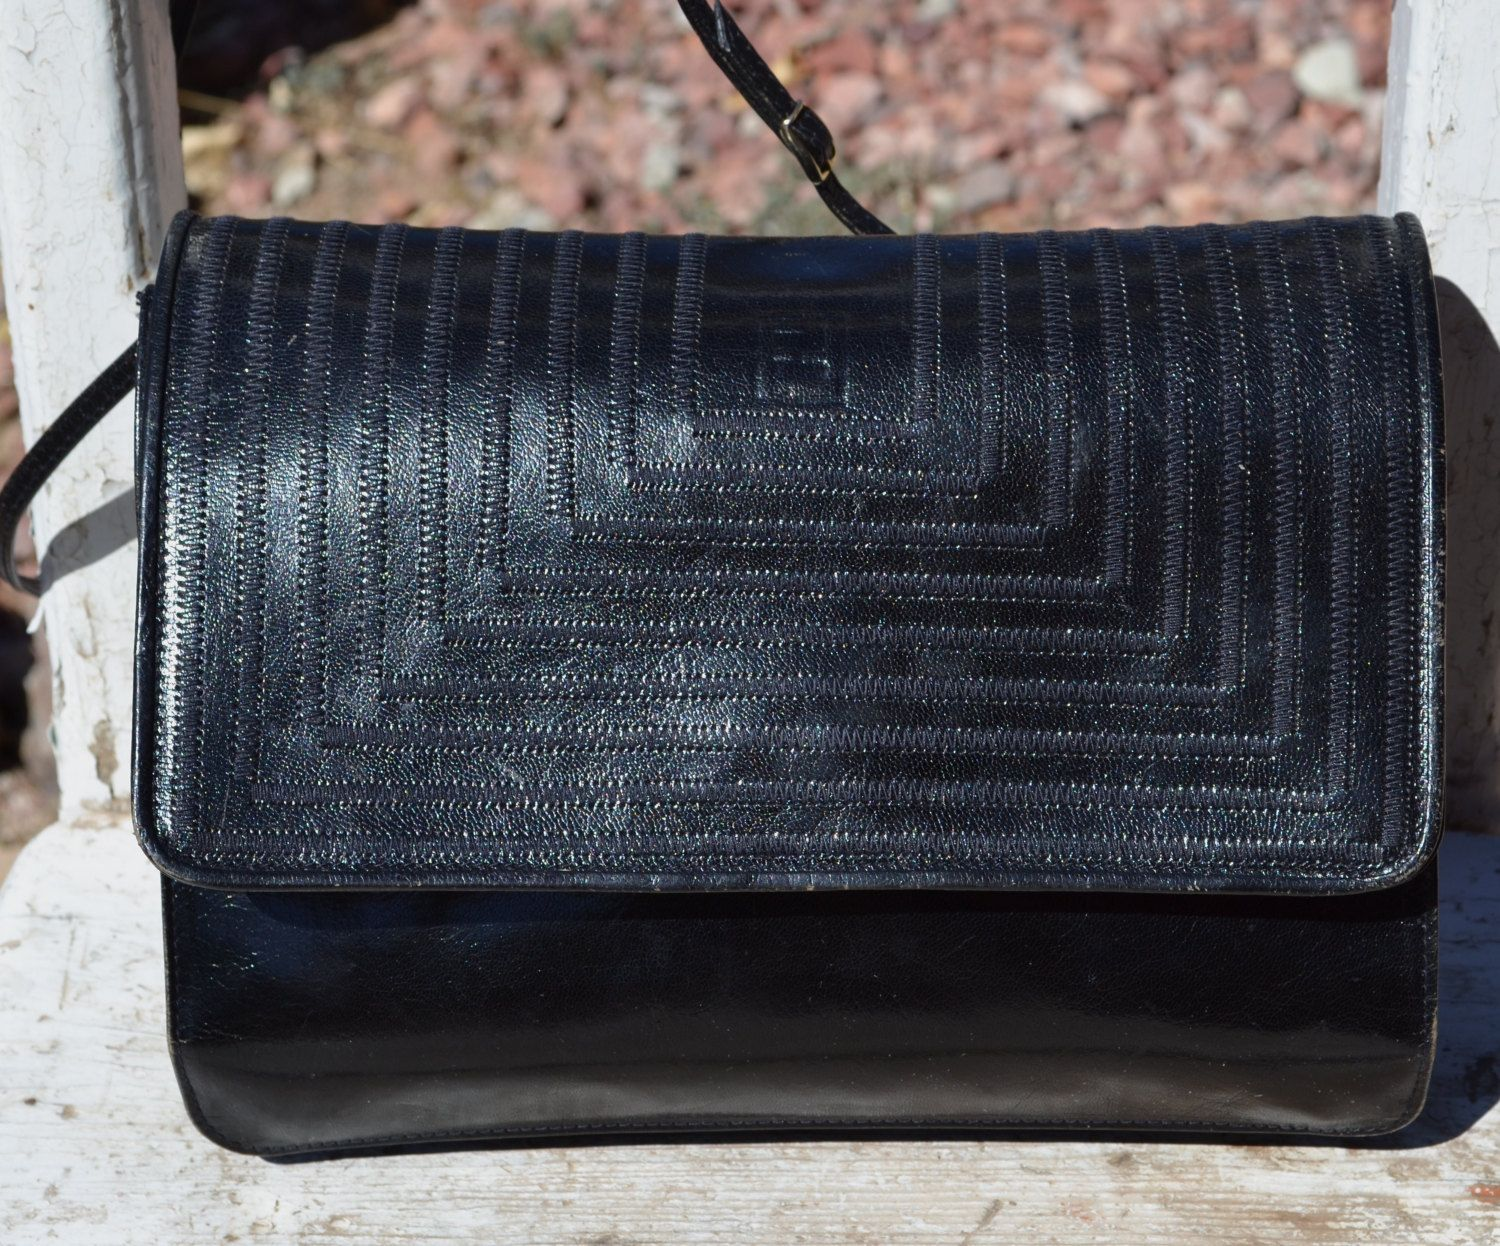 Fendi Convertible Clutch